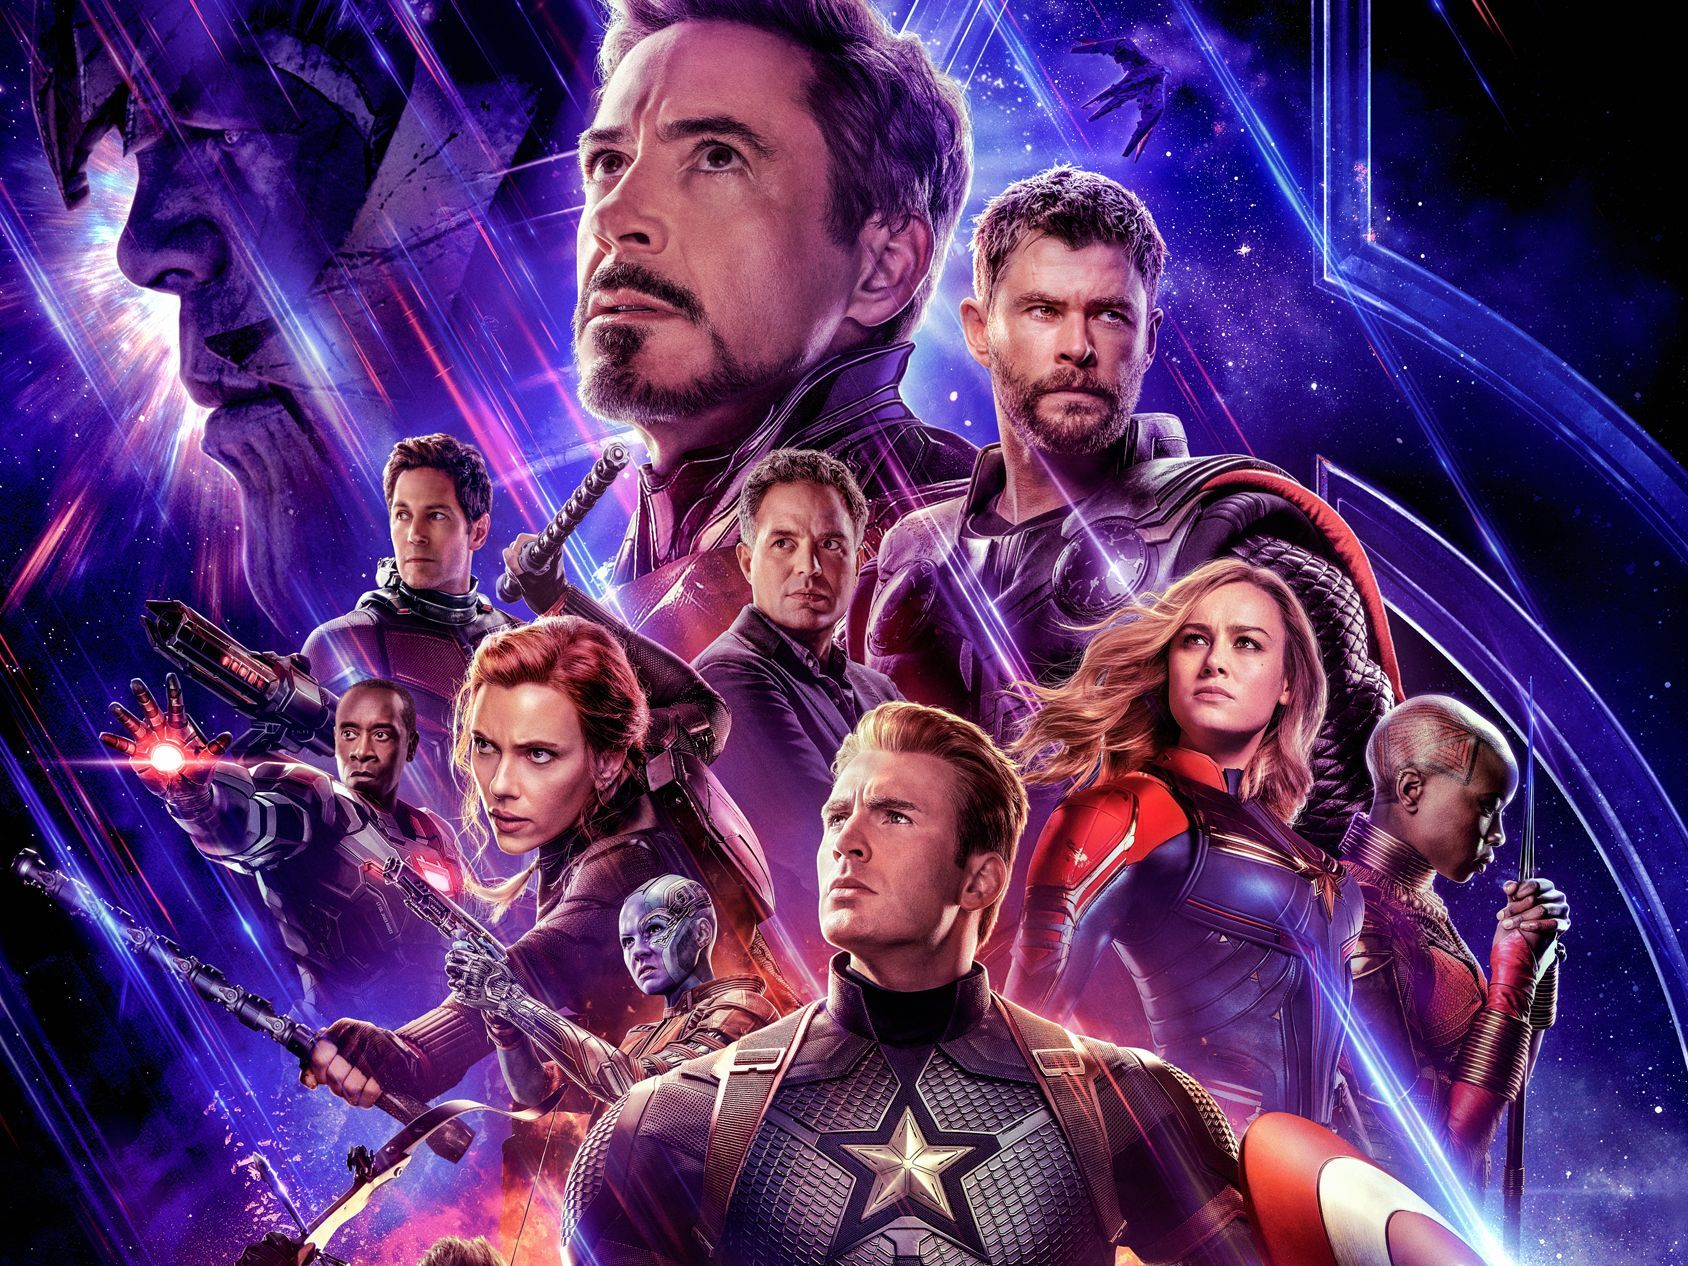 Avengers: Endgame's 3-Hour Runtime Is A Stark Reminder Of